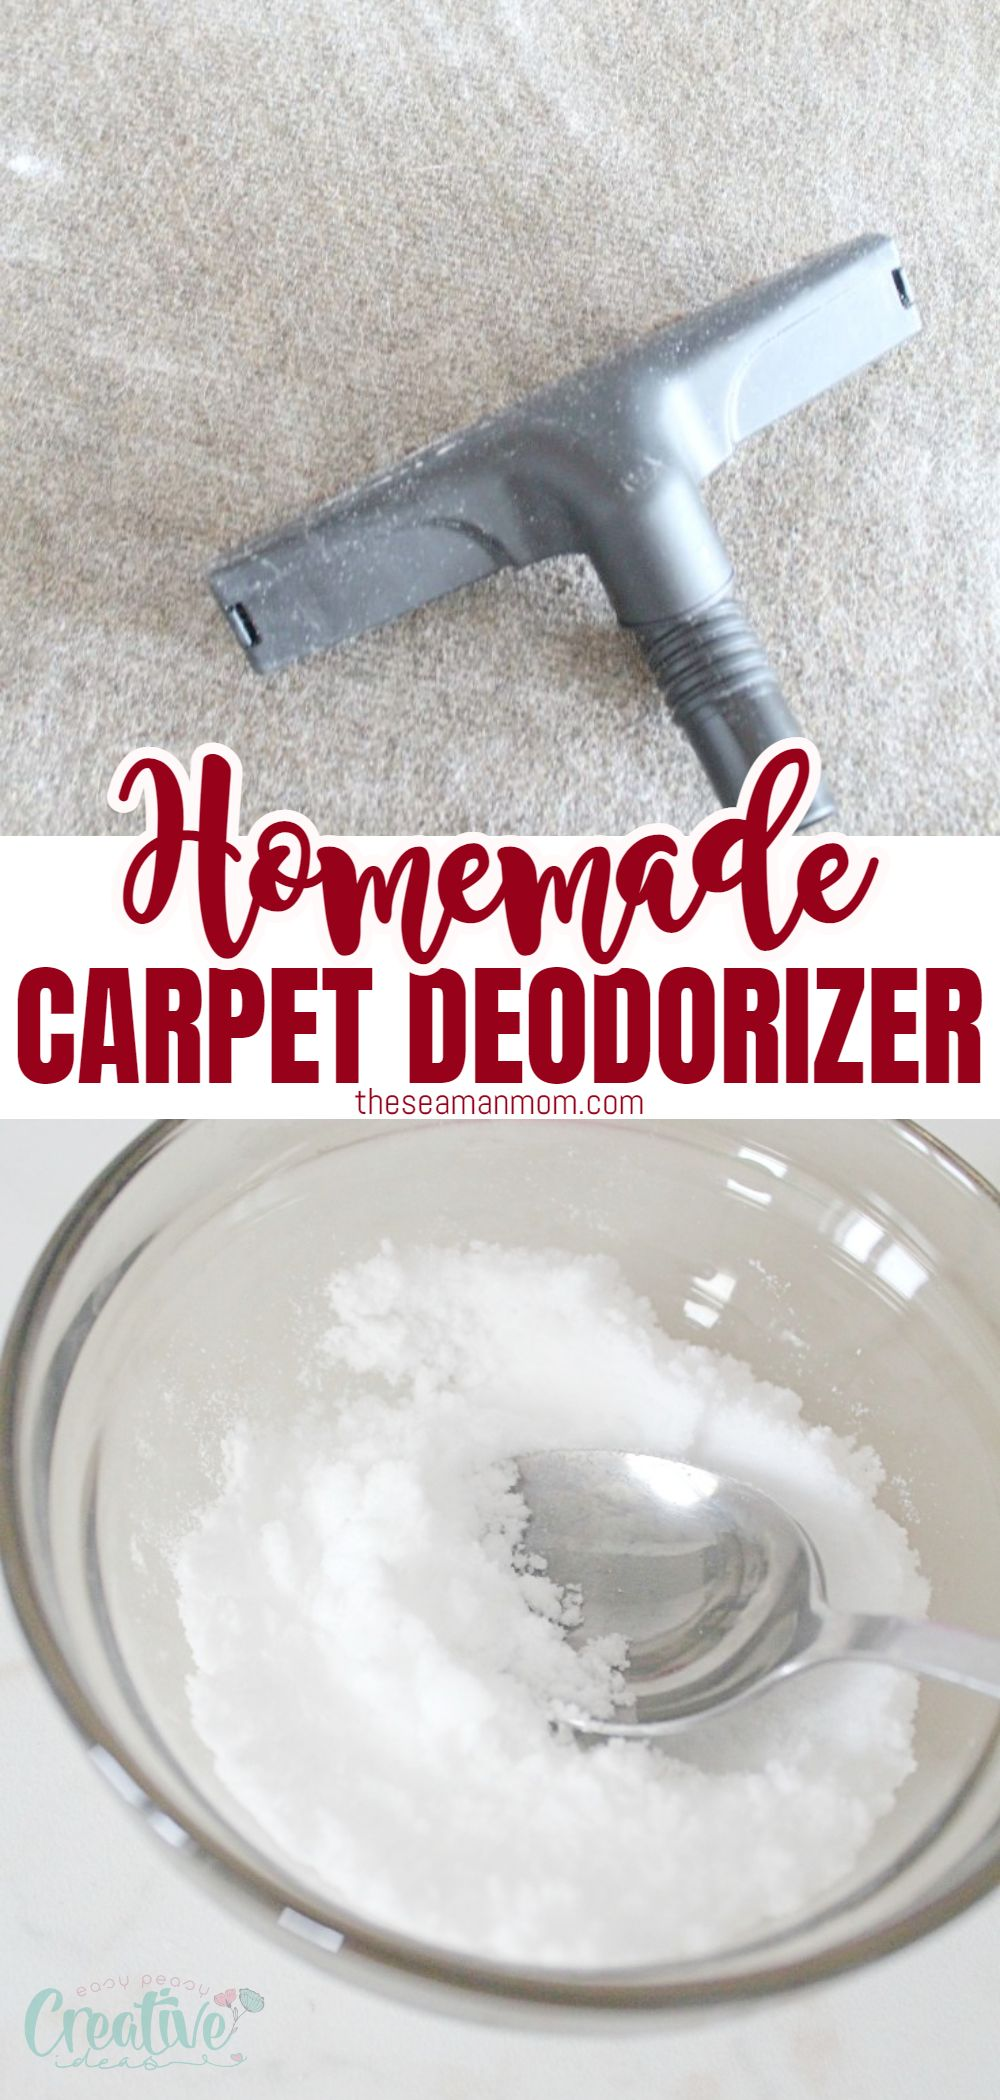 Are you sick of your stinky carpets? Remove carpet odor & get it to smell fresh and nice again the easy, natural, homemade way! Pet odor removal has never been easier with this DIY carpet deodorizer! In this tutorial you'll learn how to remove carpet odor without an expensive deodorizer! via @petroneagu